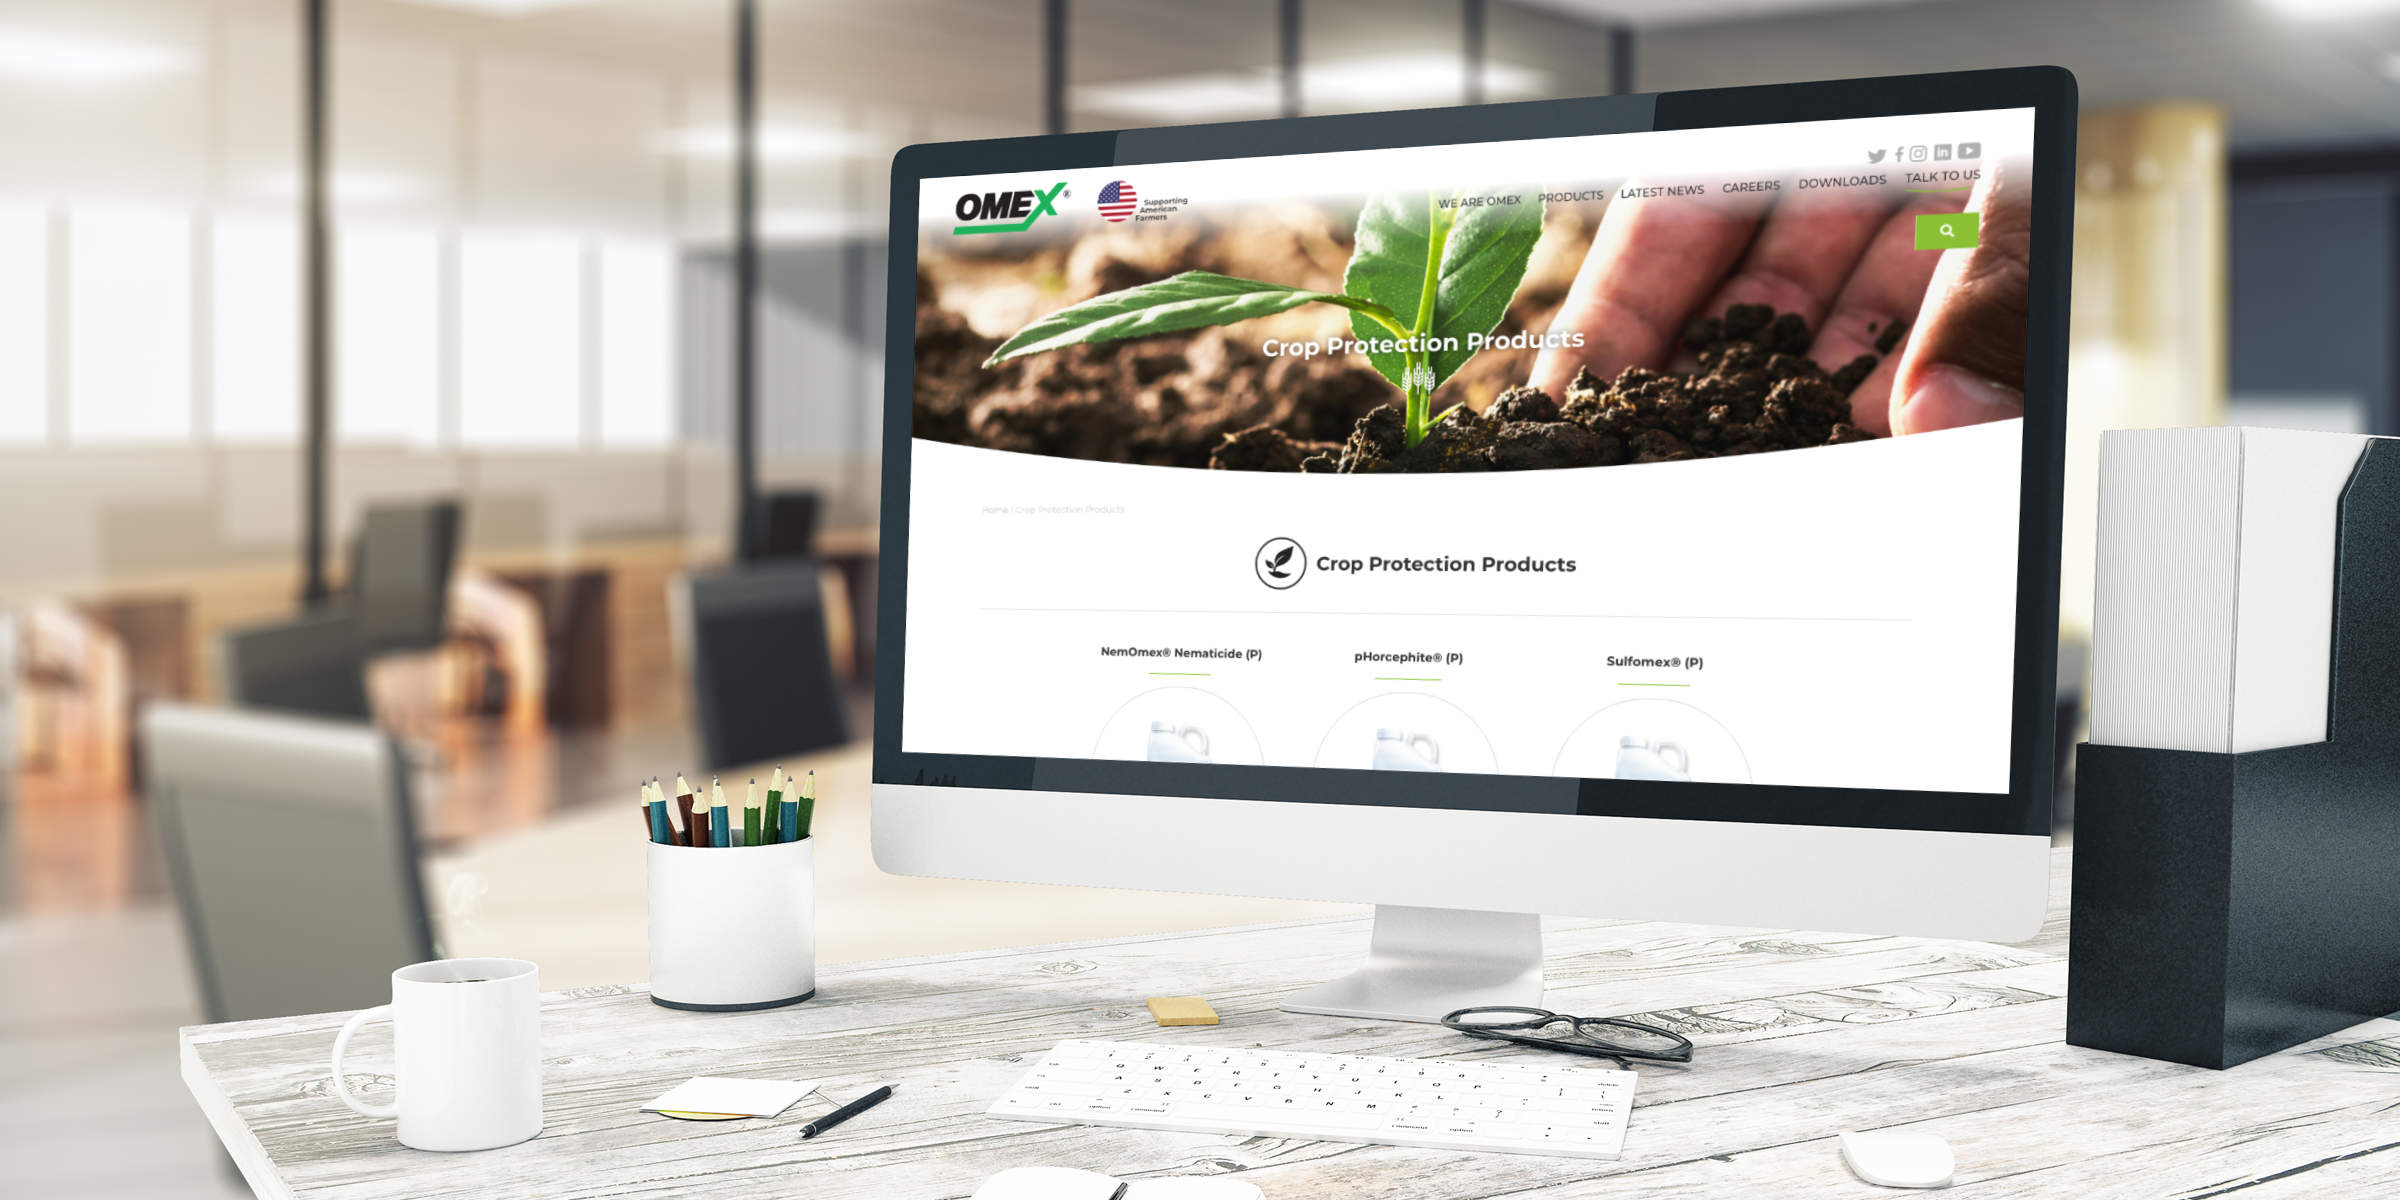 OMEX USA website design